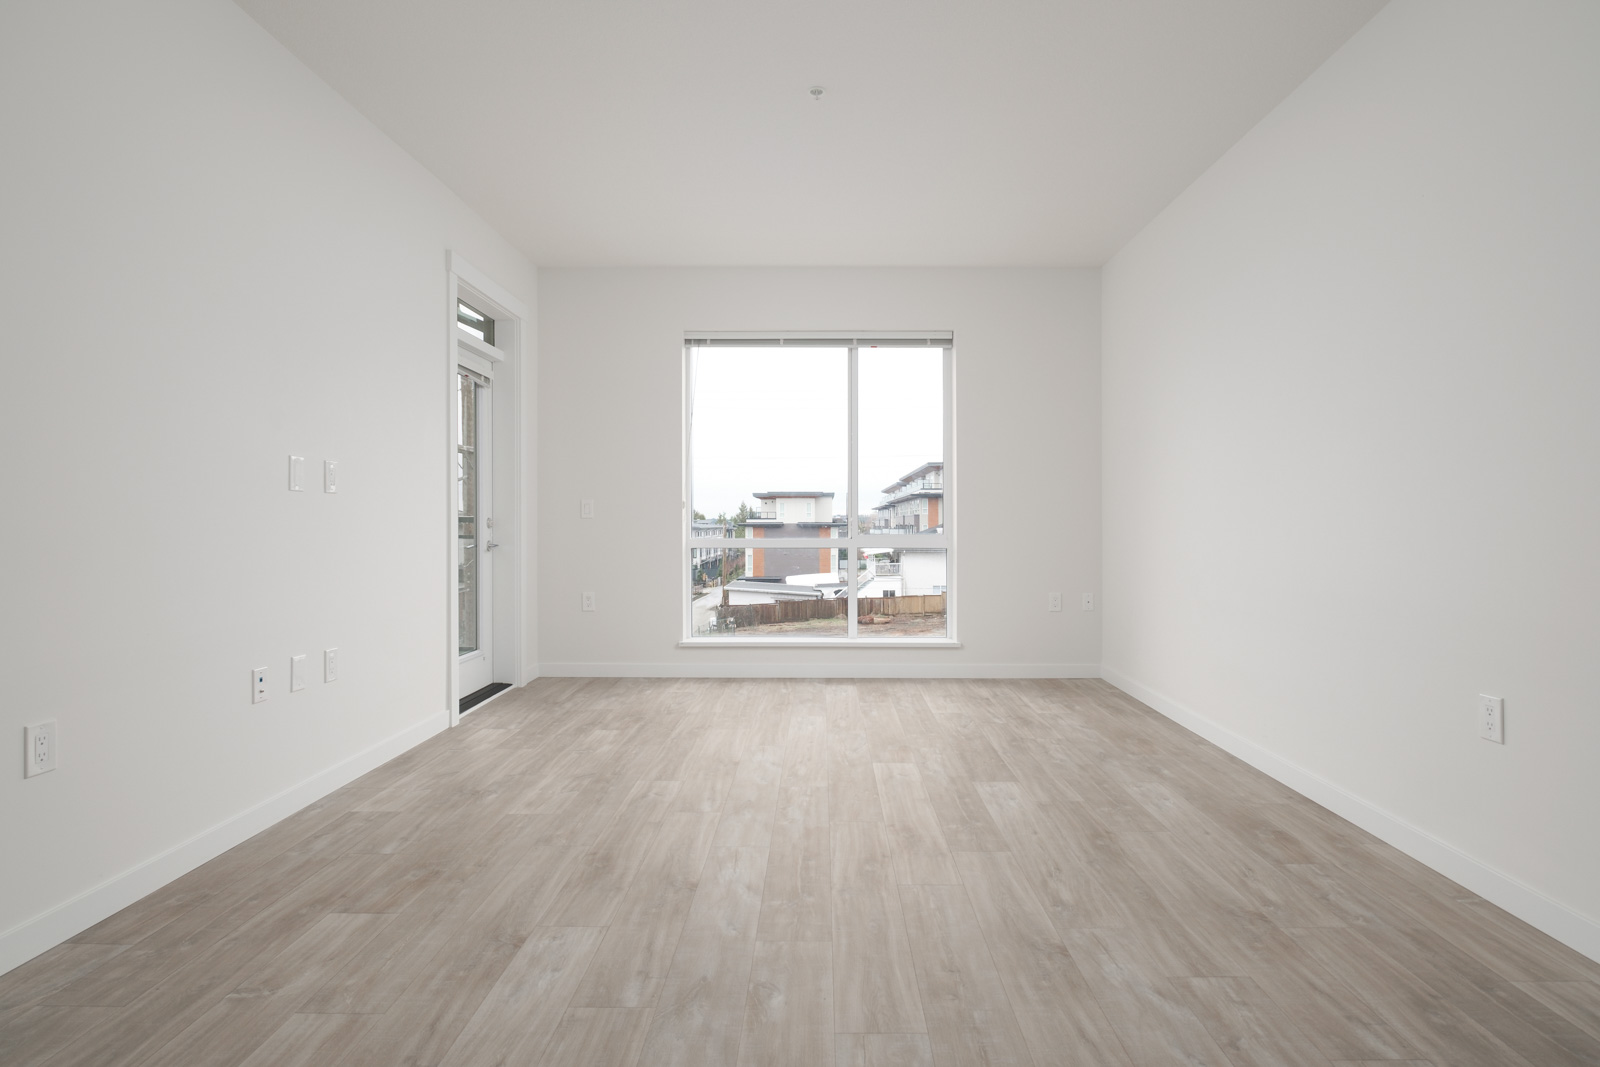 living room with hardwood floors in rental condo in the Lonsdale neighbourhood of North Vancouver